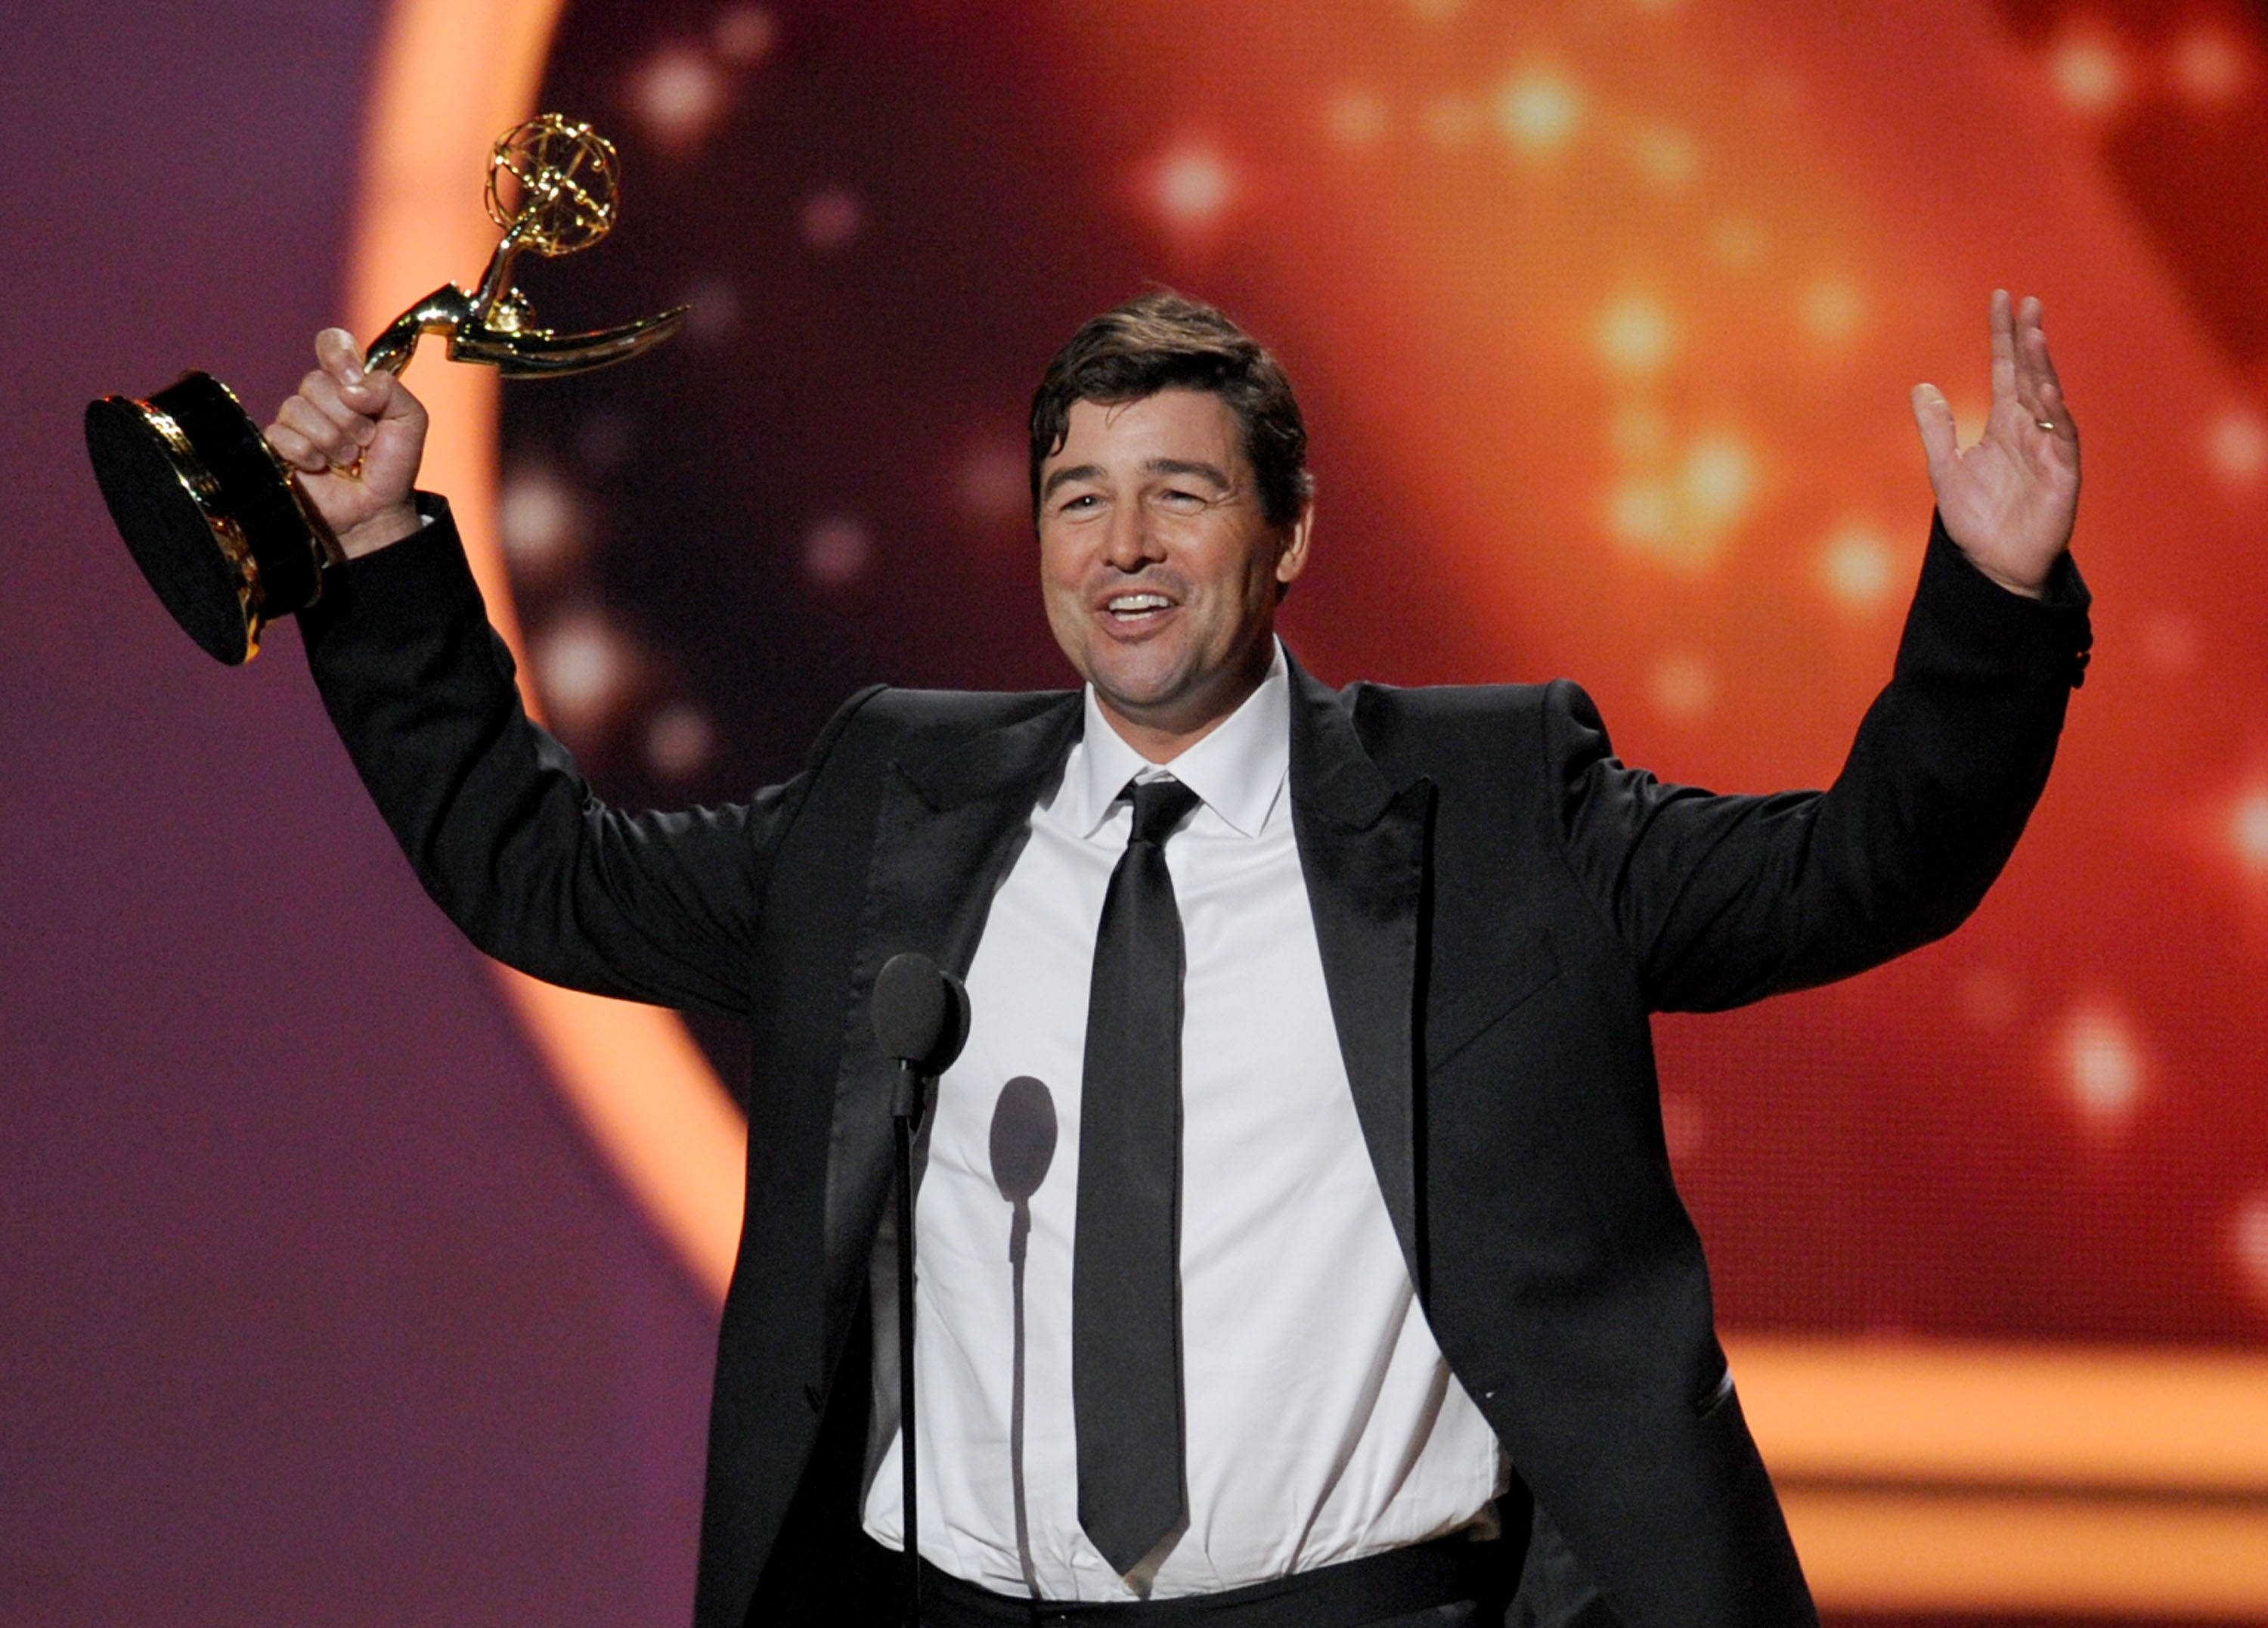 Kyle Chandler accepted his 2011 Emmy Award.